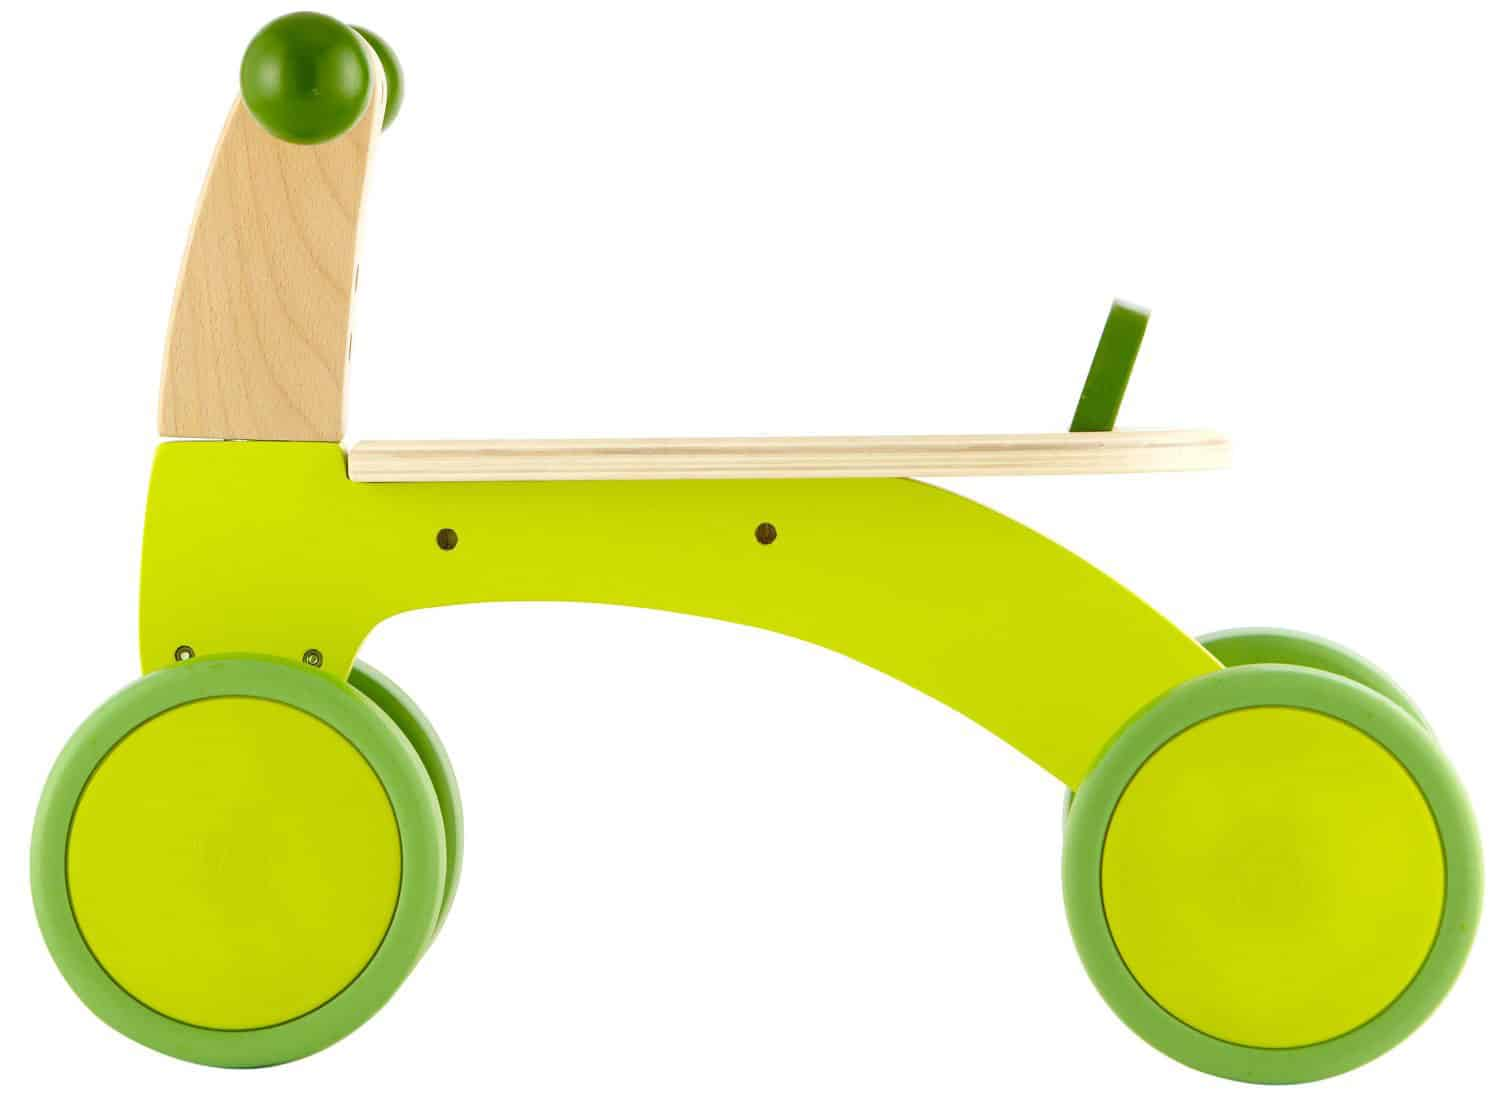 Ride On Toys For Toddlers : Hello wonderful starter wooden ride on toys for toddlers